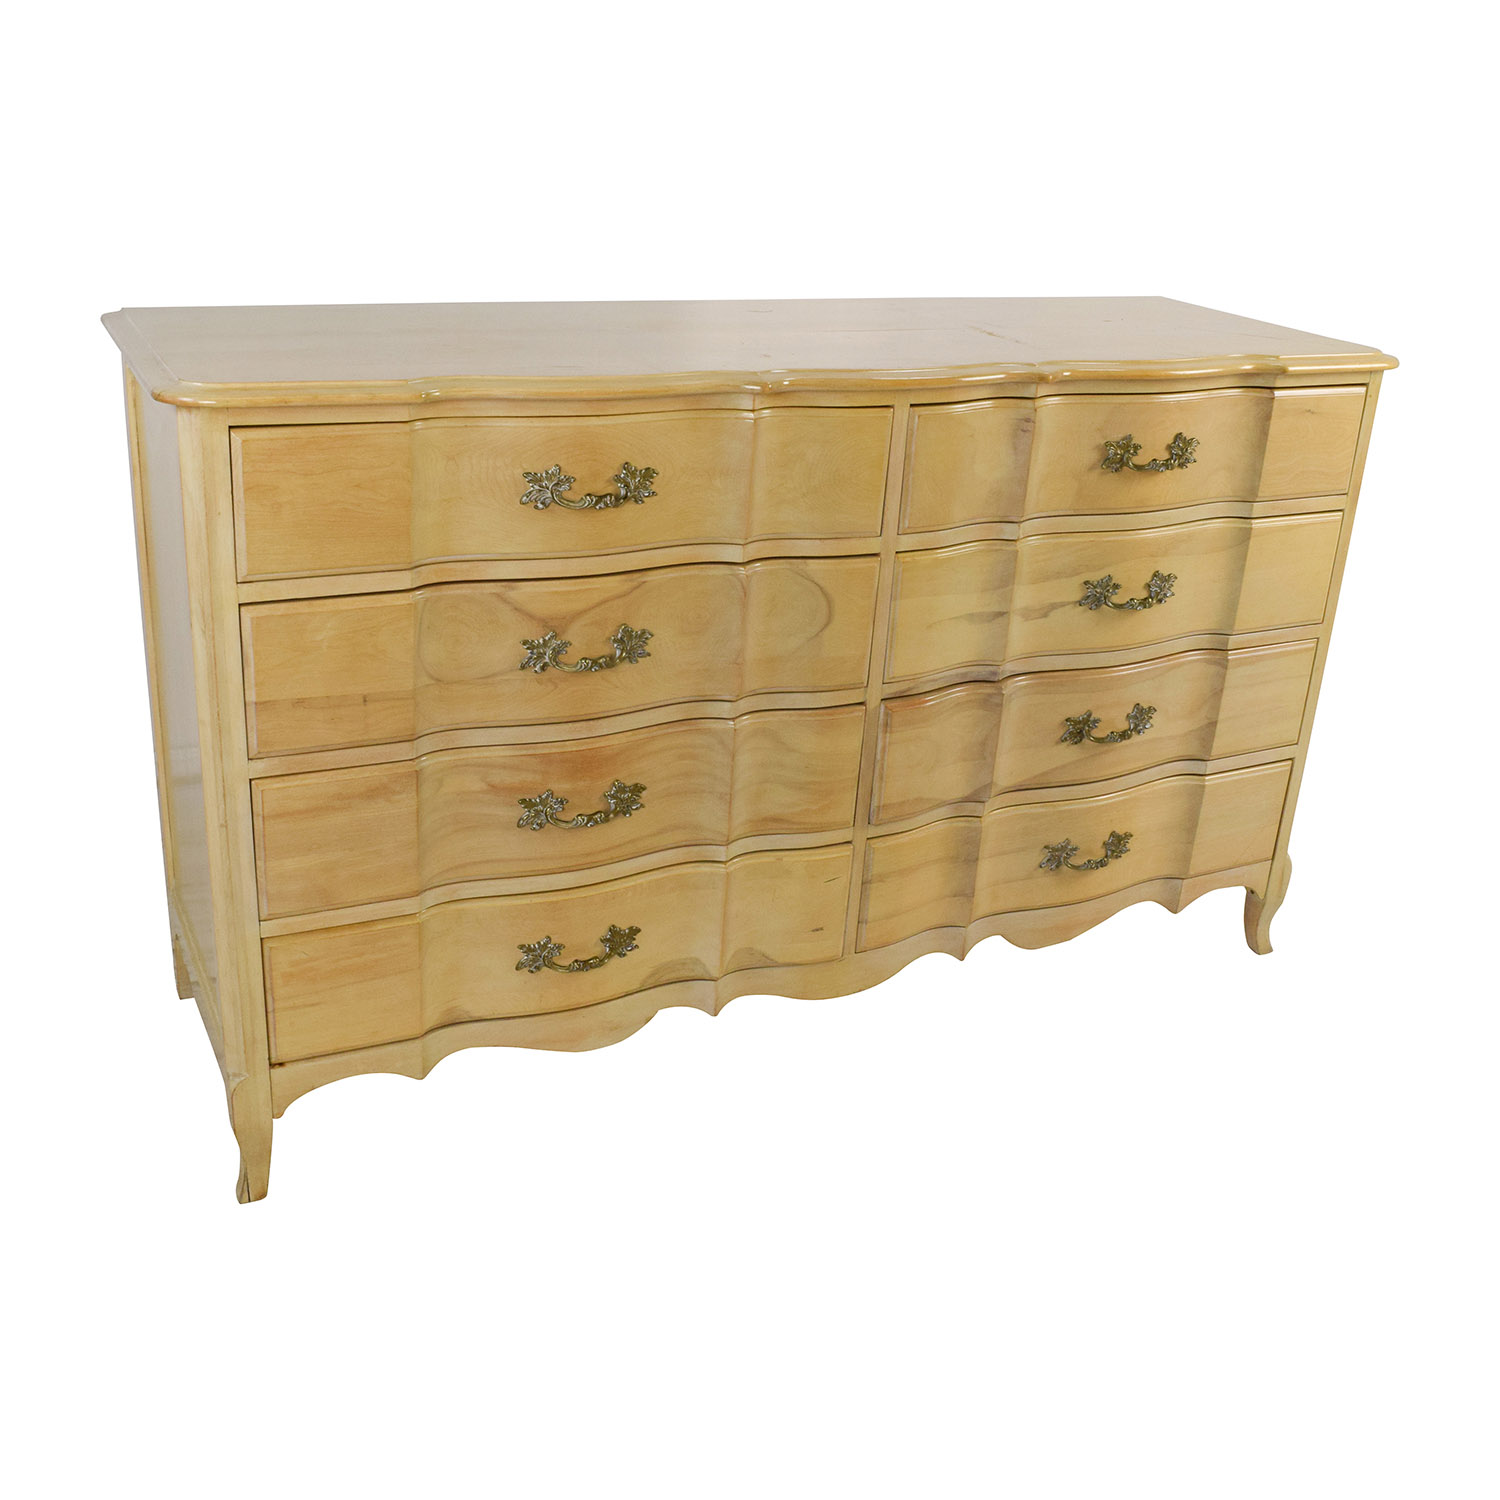 Dresser Dimensions 70% off - light wood dovetailed 8-drawer dresser / storage